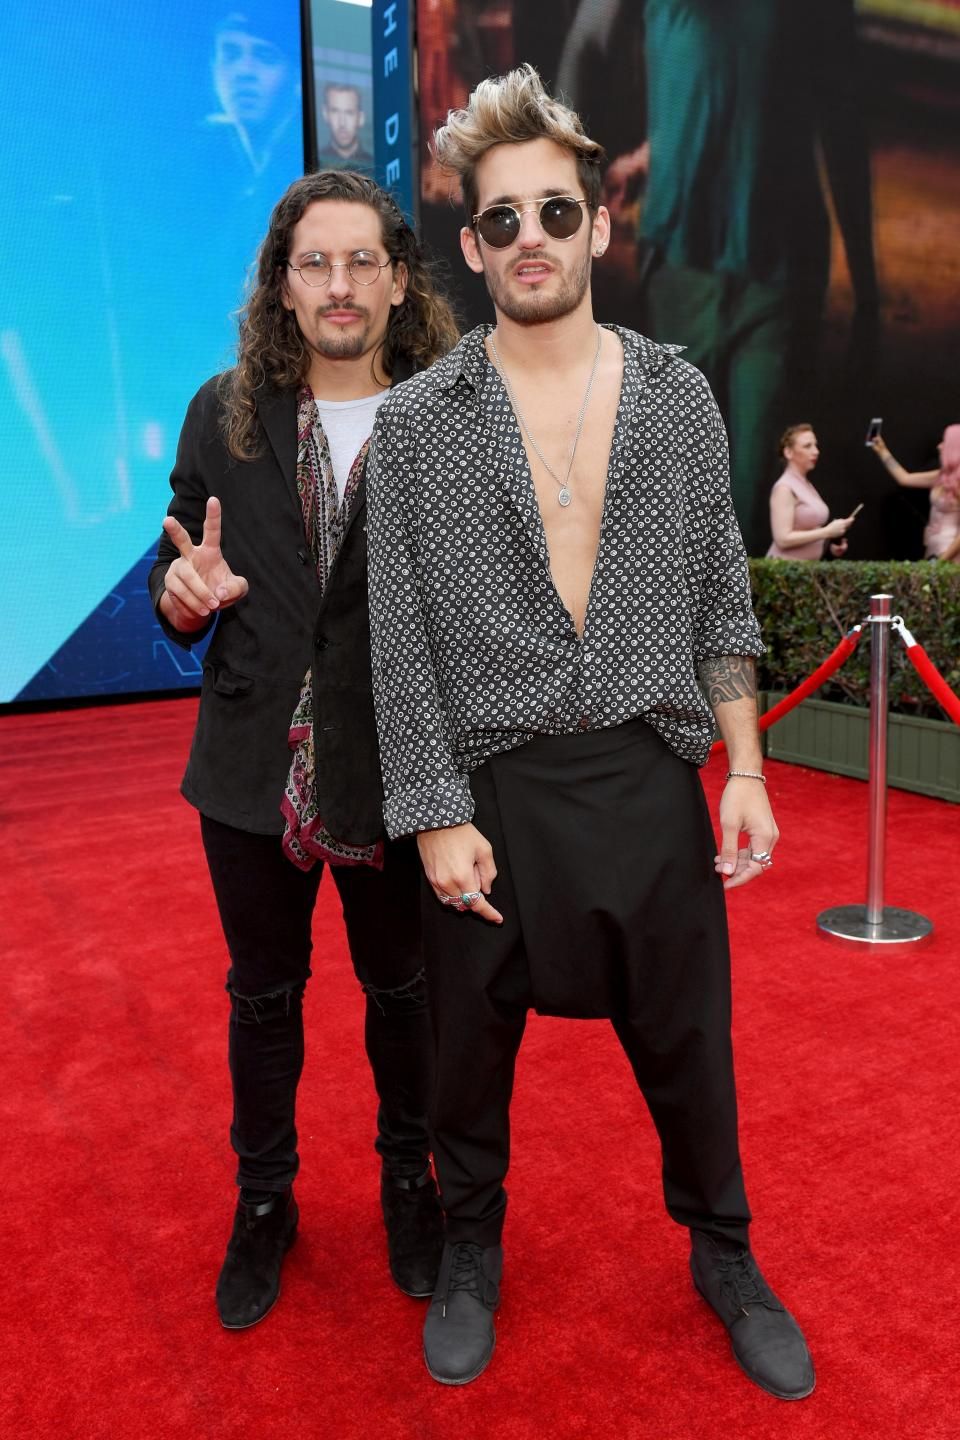 Mau Y Ricky at the 18th Latin GRAMMY Awards